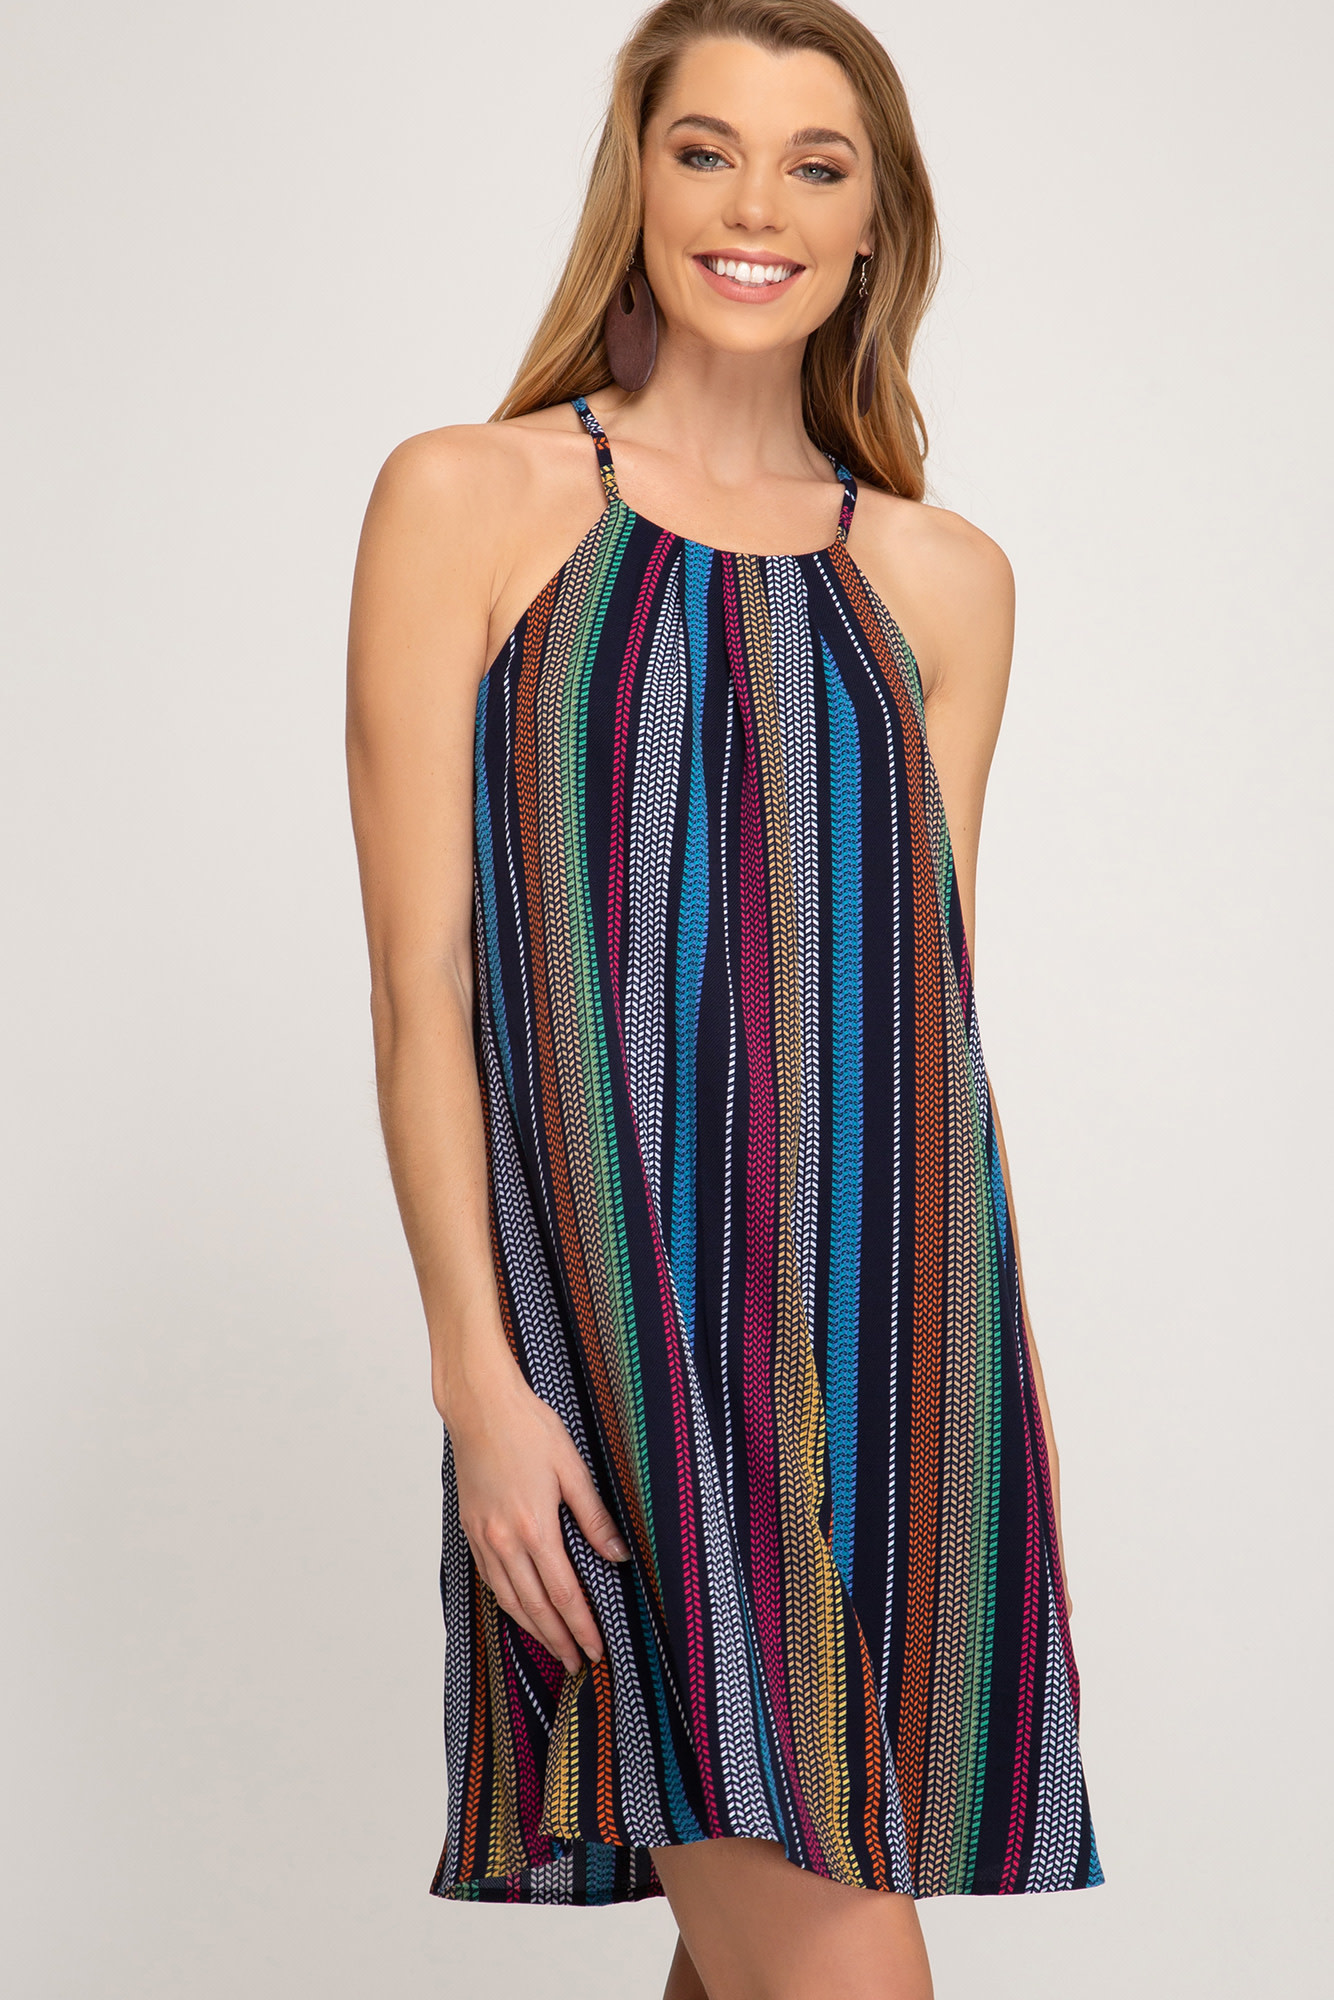 Picture Perfect Striped Dress -